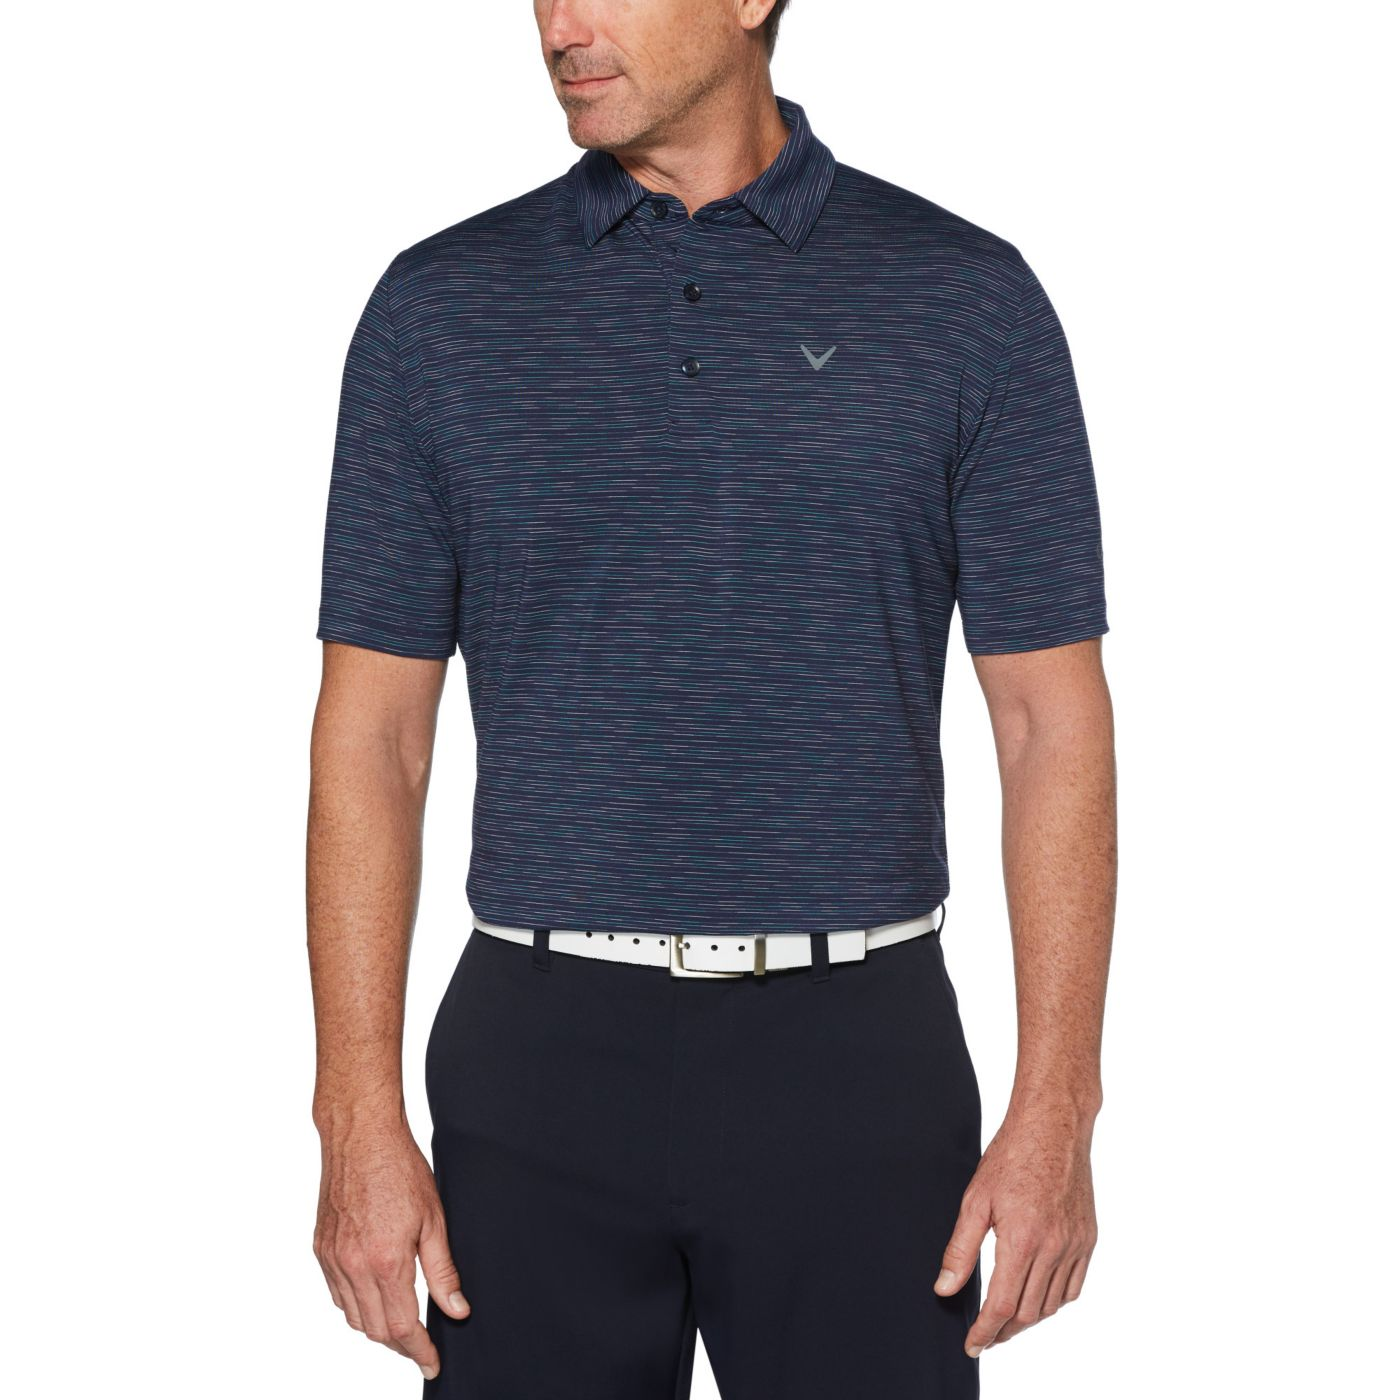 Callaway Men's Marled Texture Stripe Golf Polo